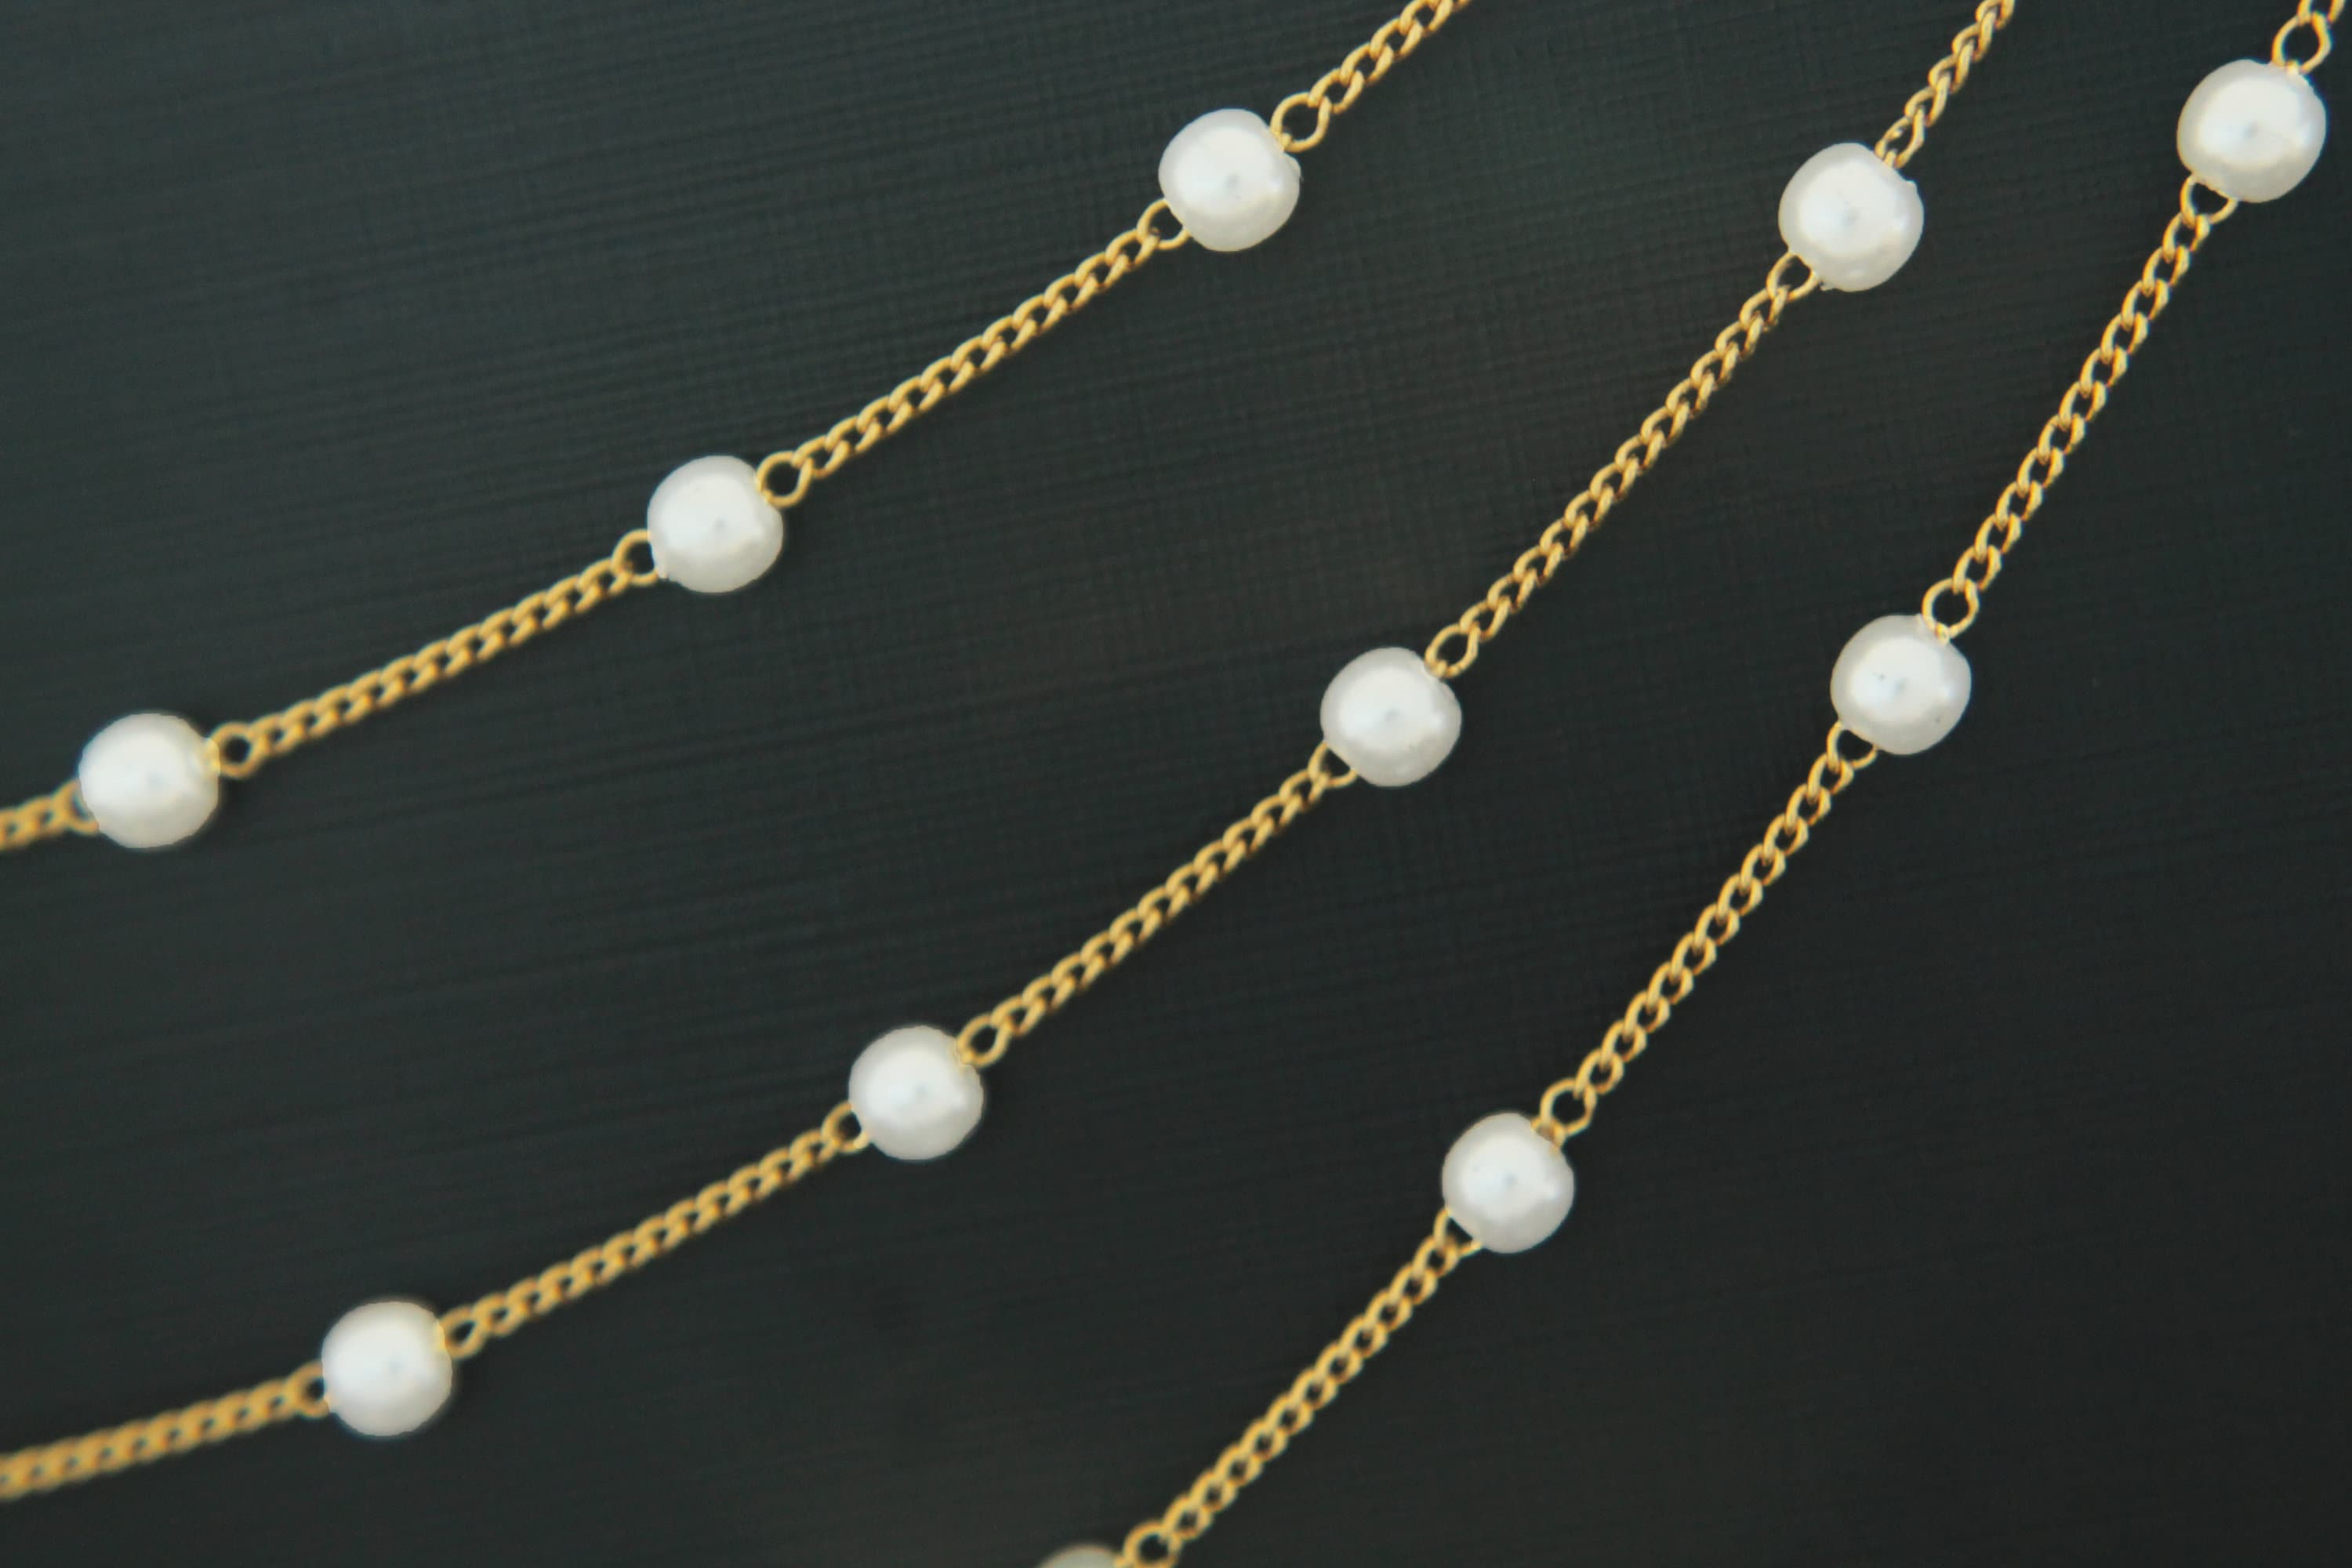 4mm Pearl Chain, Nickel free, CJ39-06, 1m, 4mm Pearl, 16K gold ...